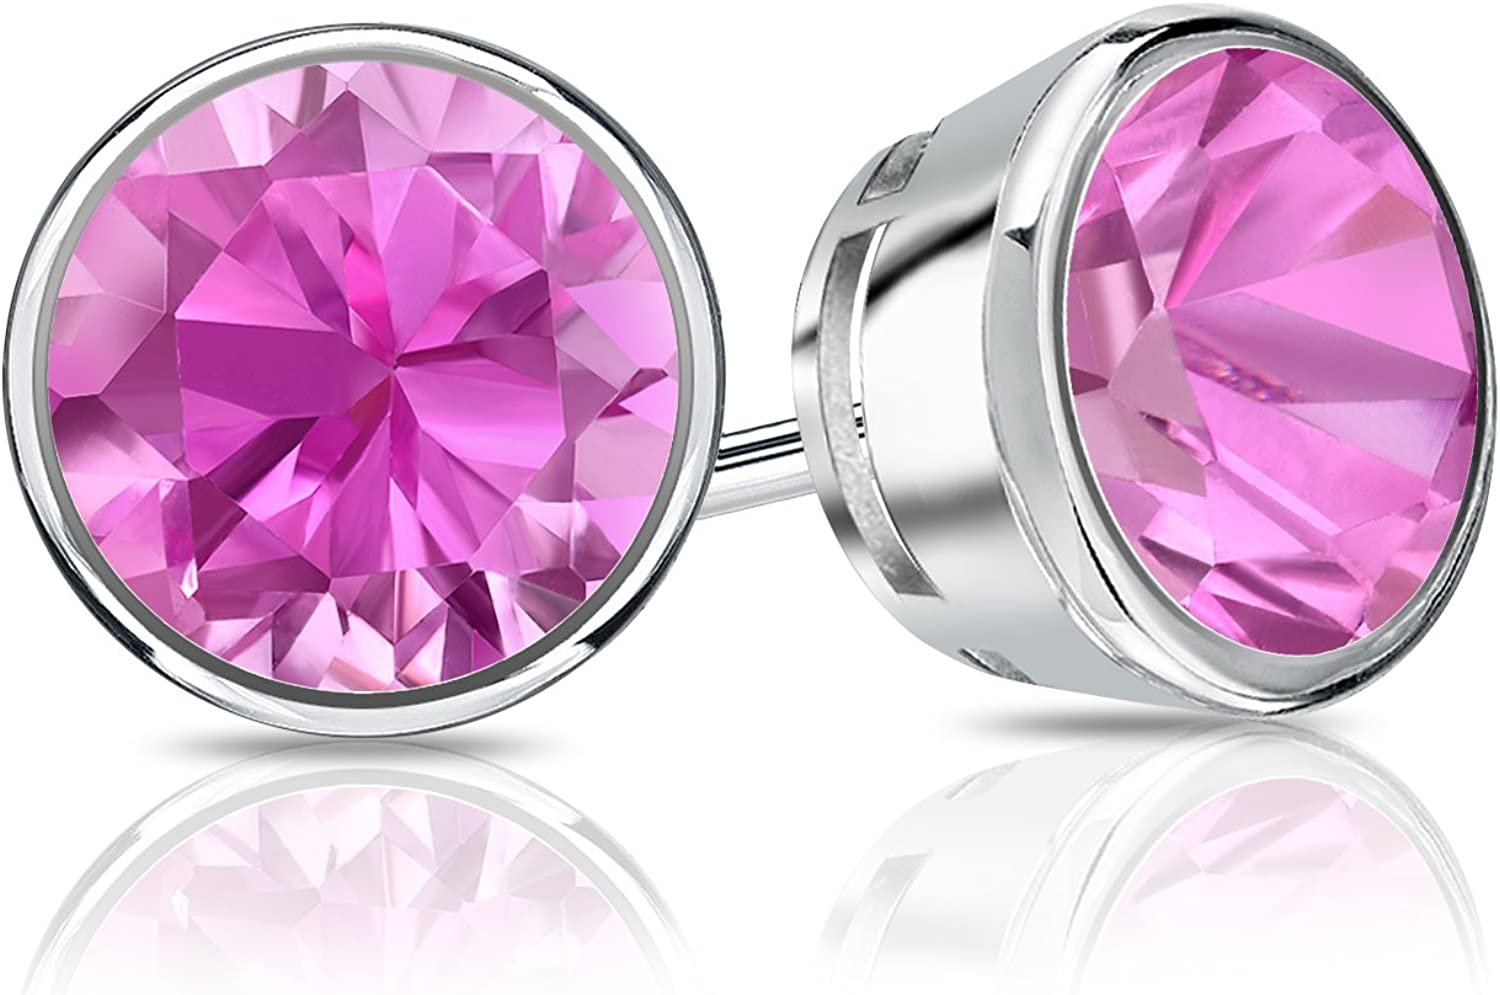 Details about  /2ct Round Cut Designer Studs White Sapphire 18k Pink Gold Earrings Screw back